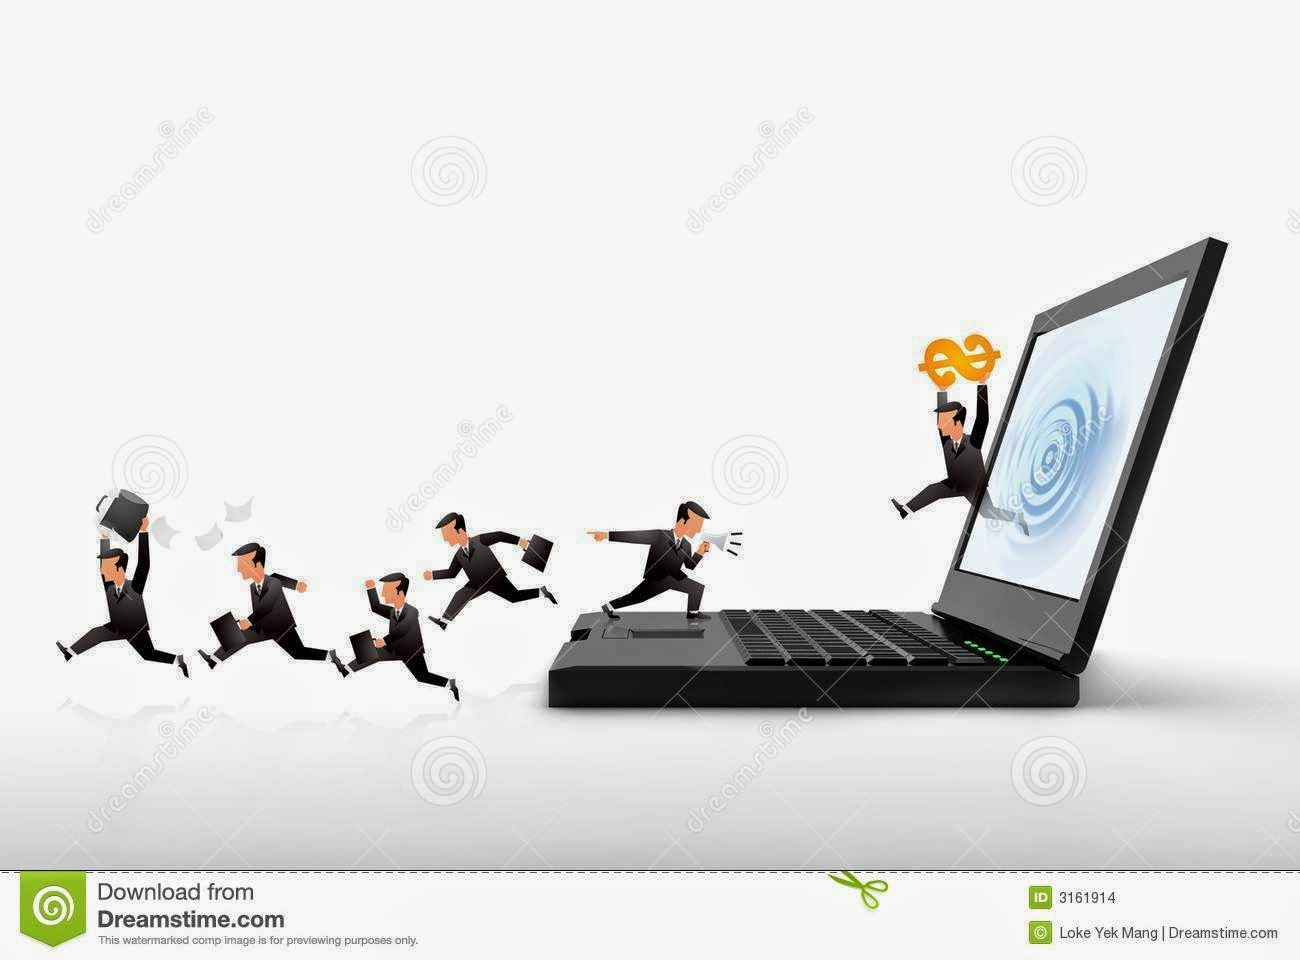 Internet Business pic, Computer word Pic, SEo Service Pic. Social Media Pic